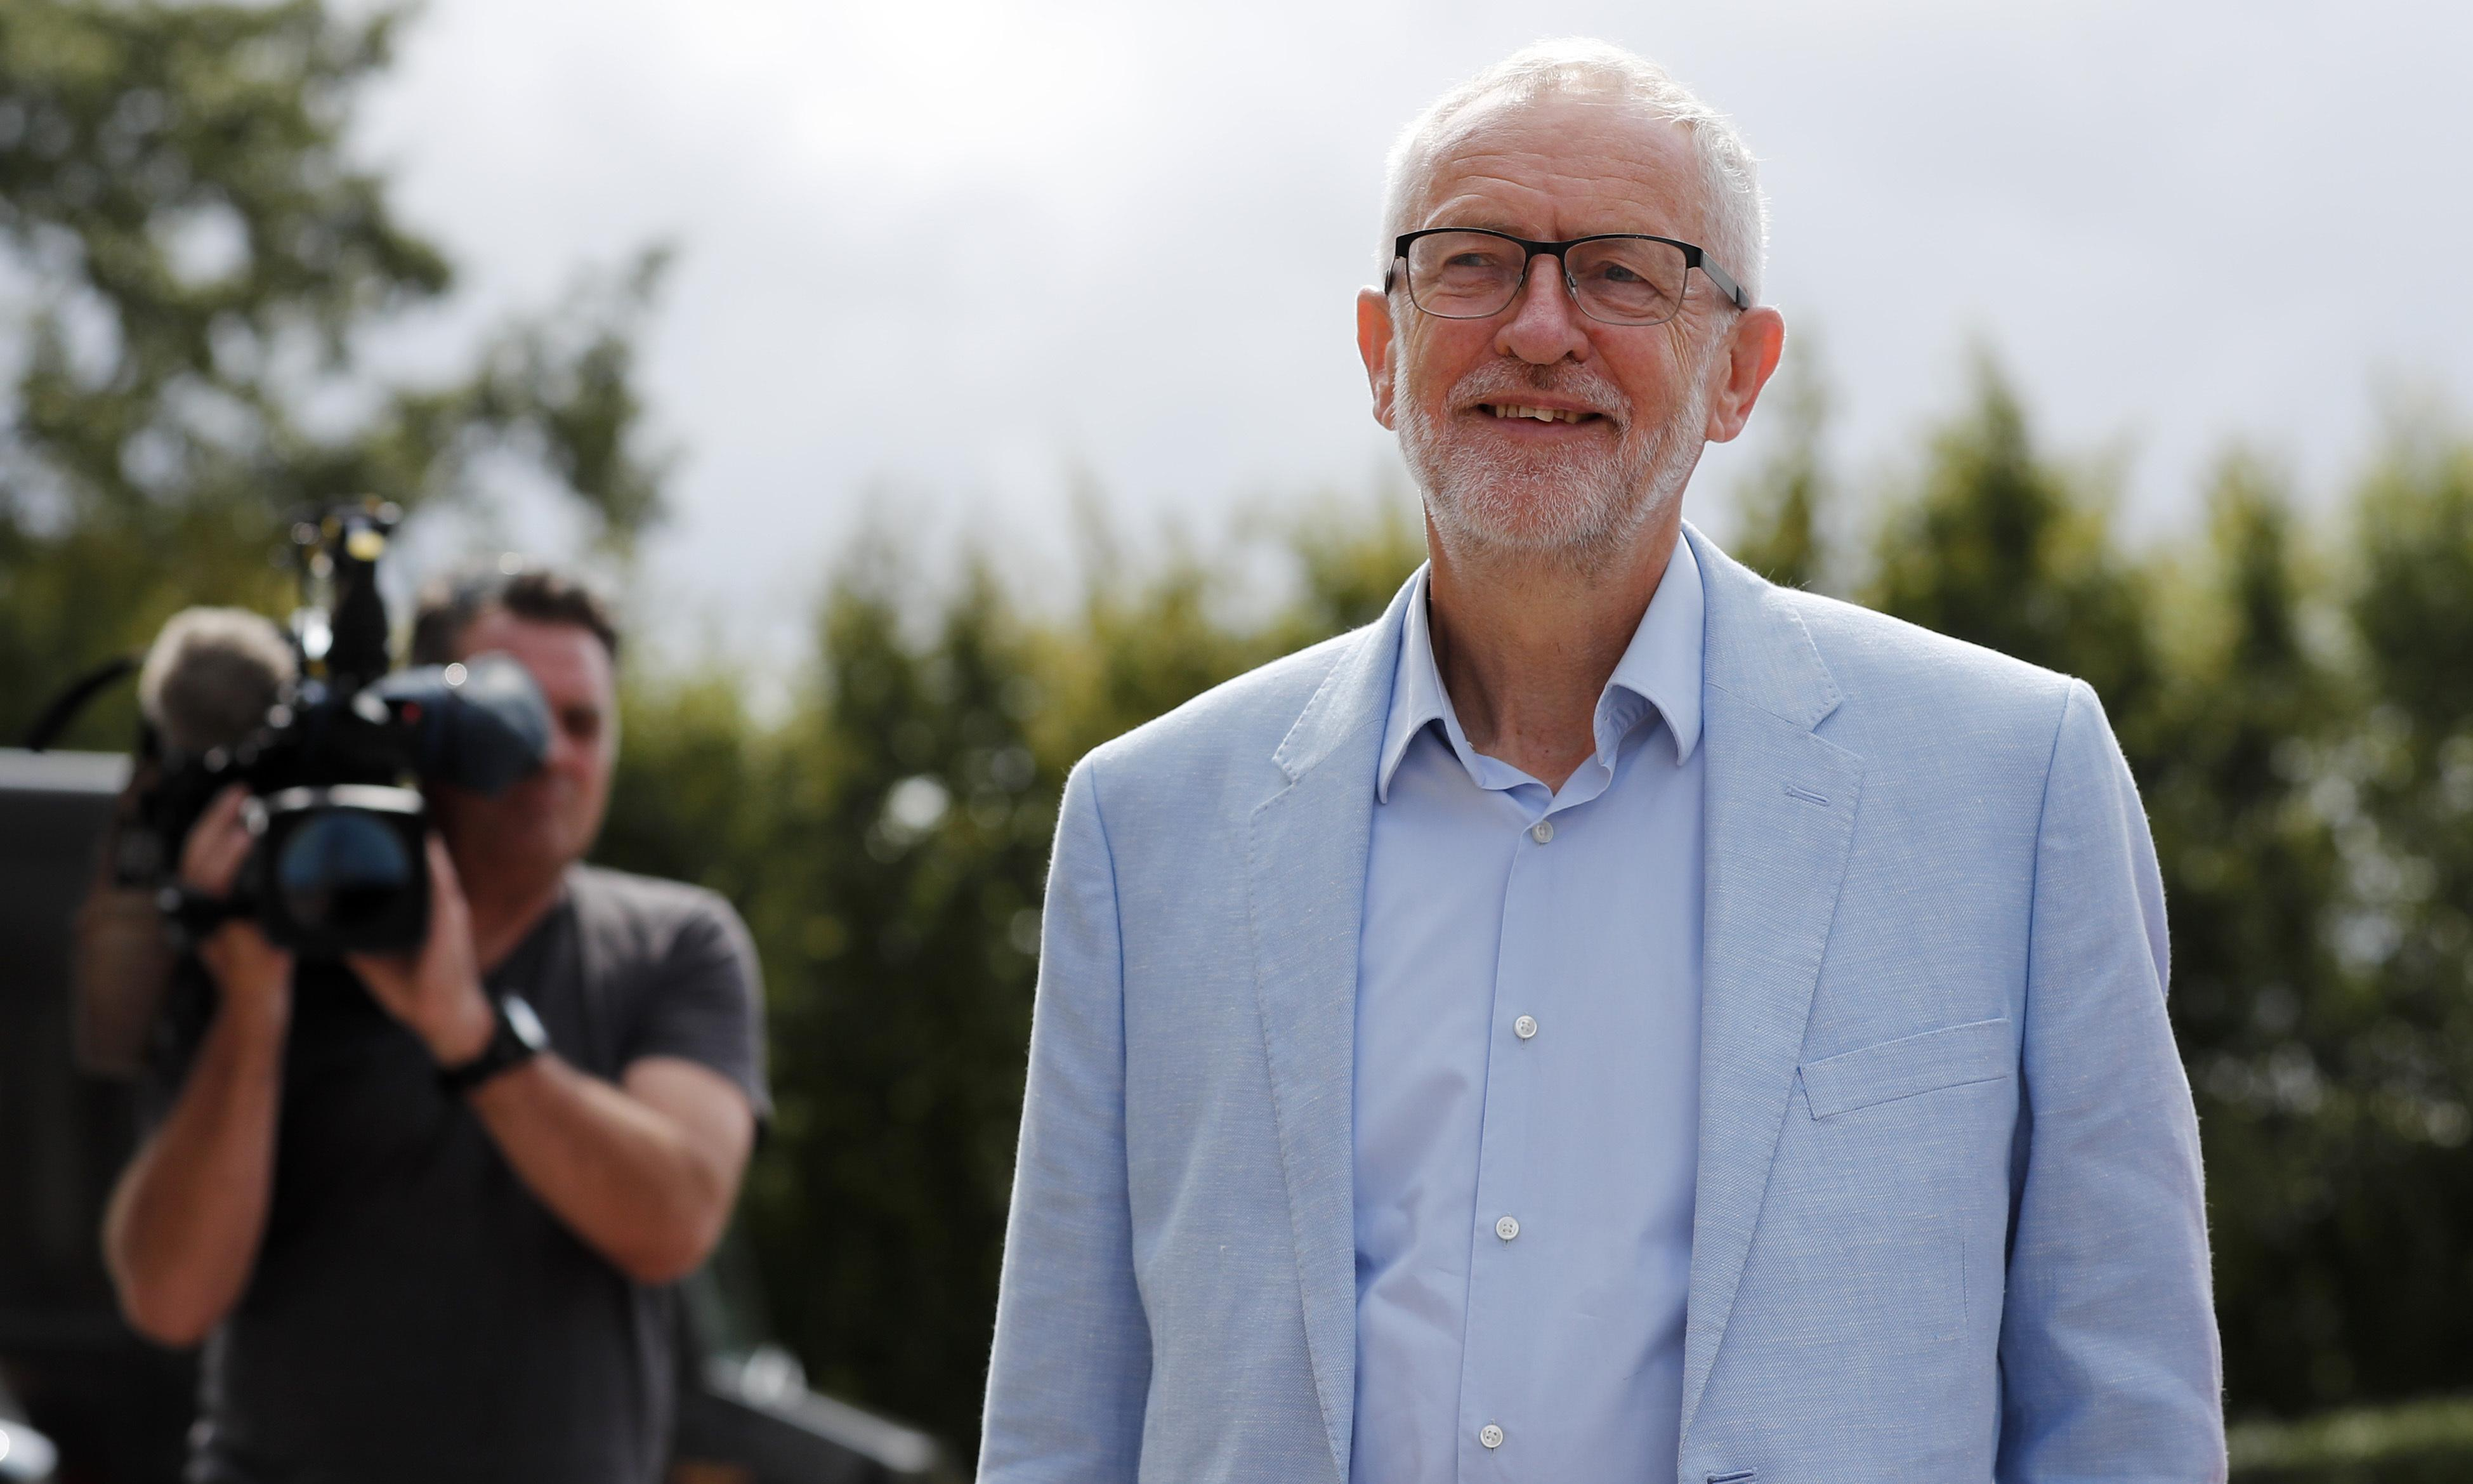 Yes, Jeremy Corbyn is divisive. But division is just what our broken politics needs